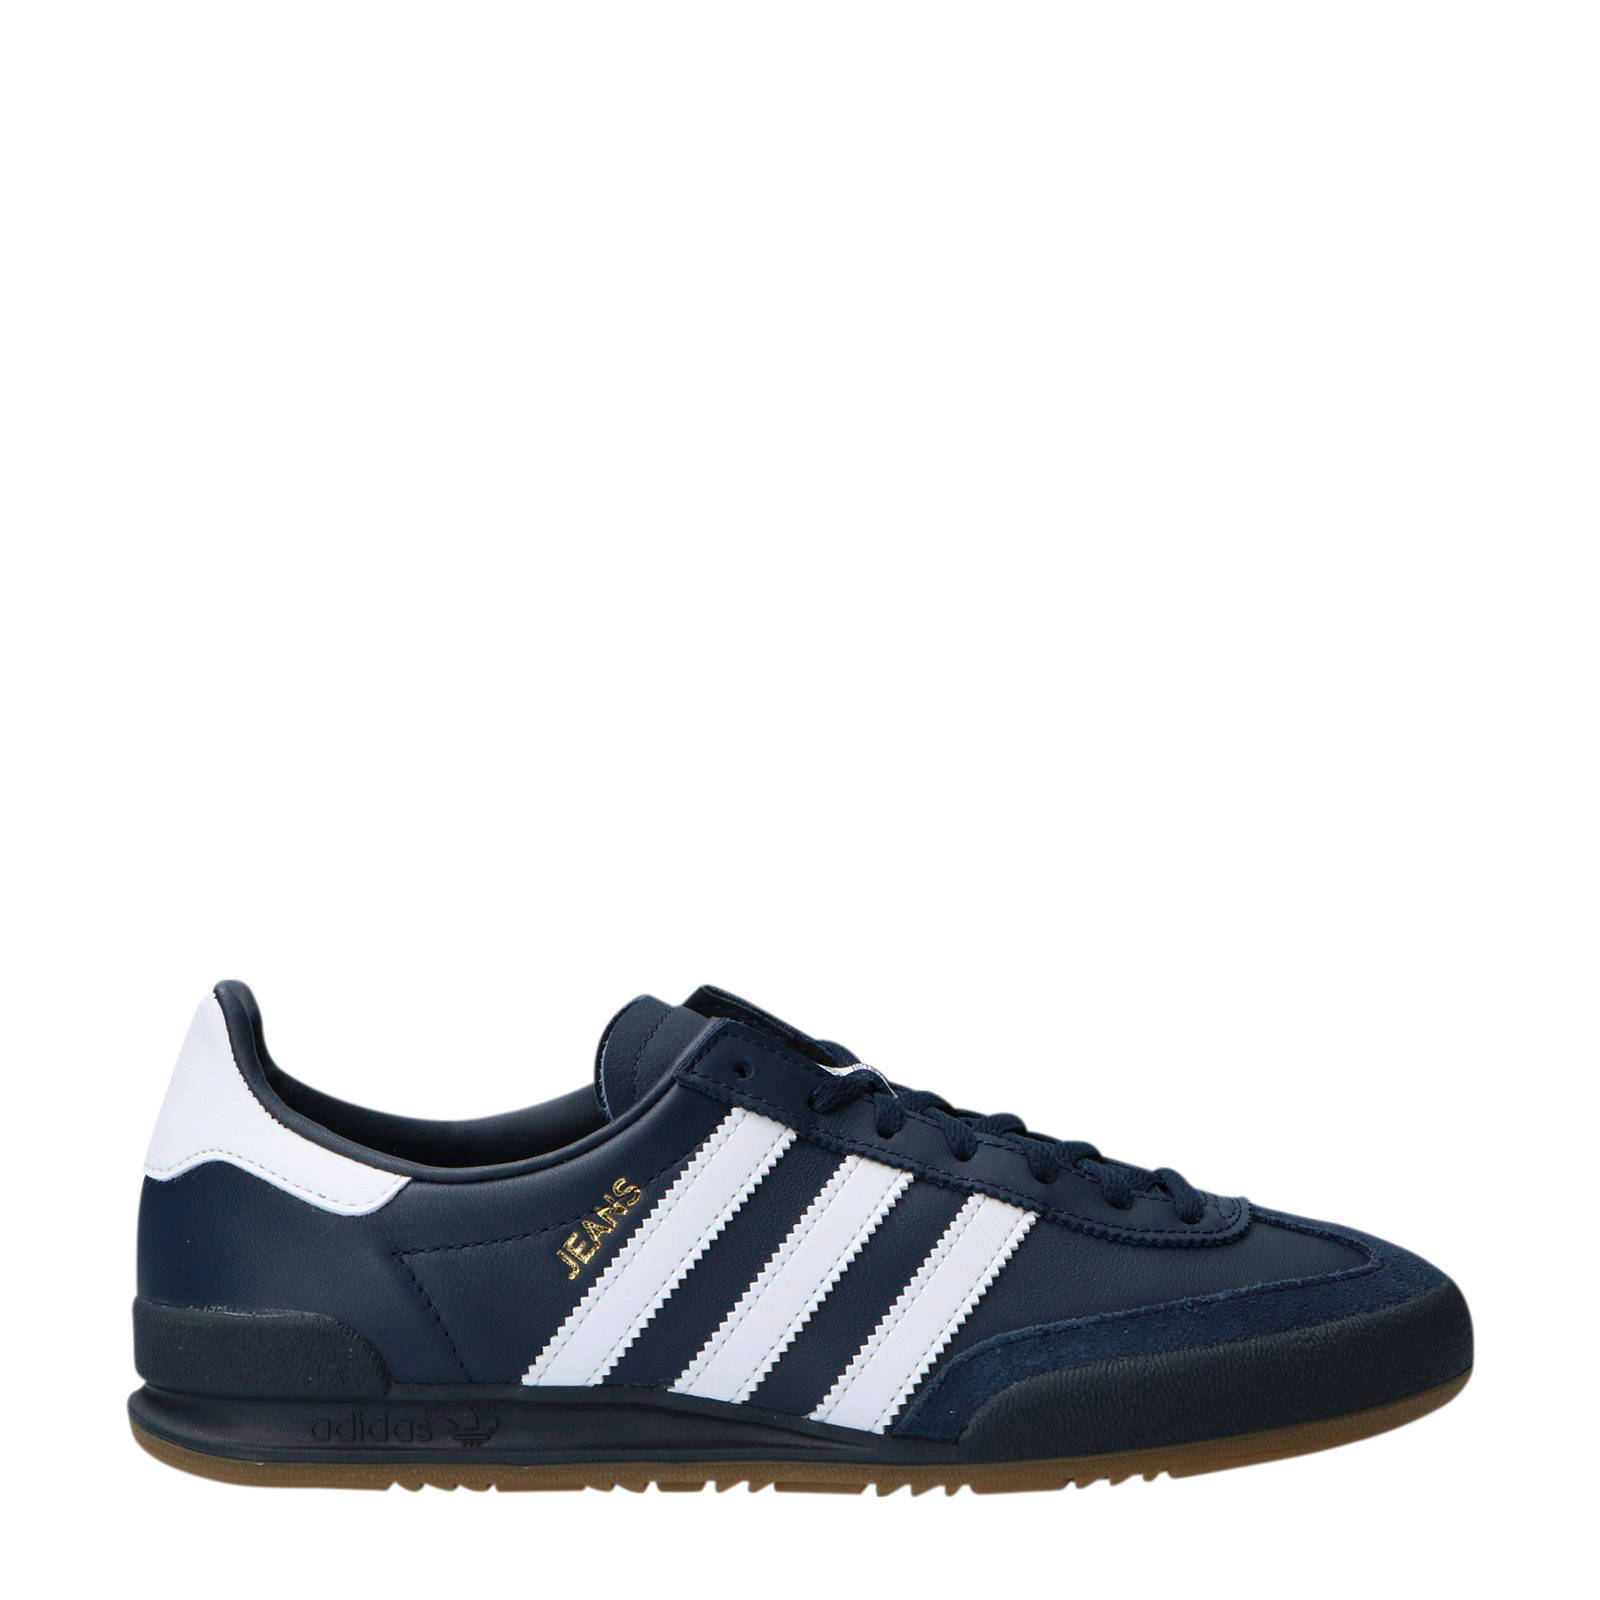 adidas sneakers donker blauw